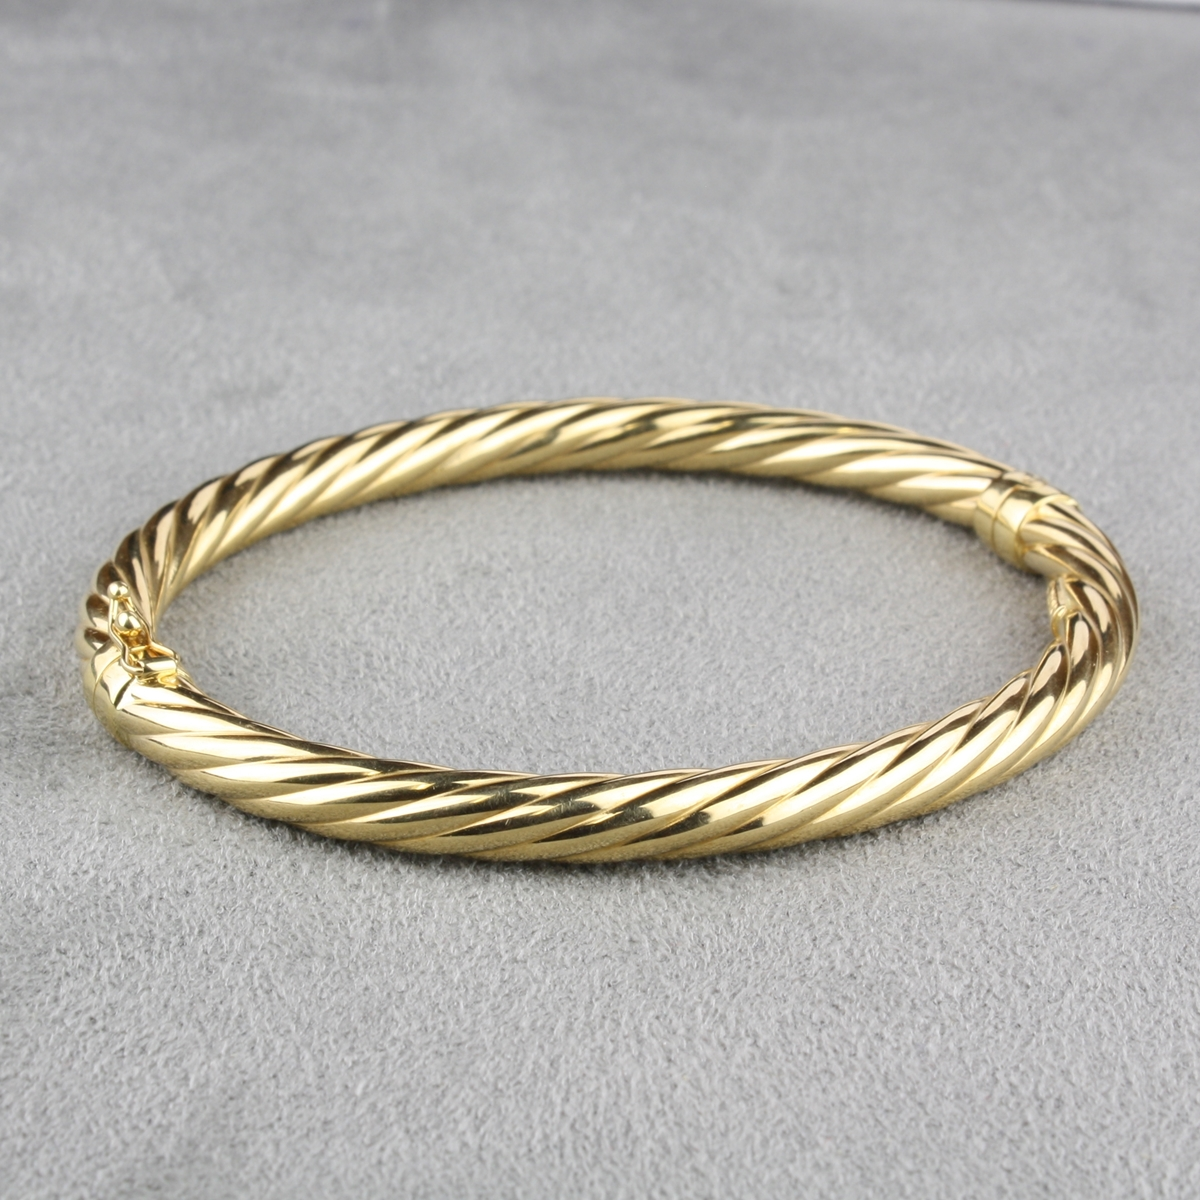 bangle gold bracelets bangles bracelet tapered in karat yellow